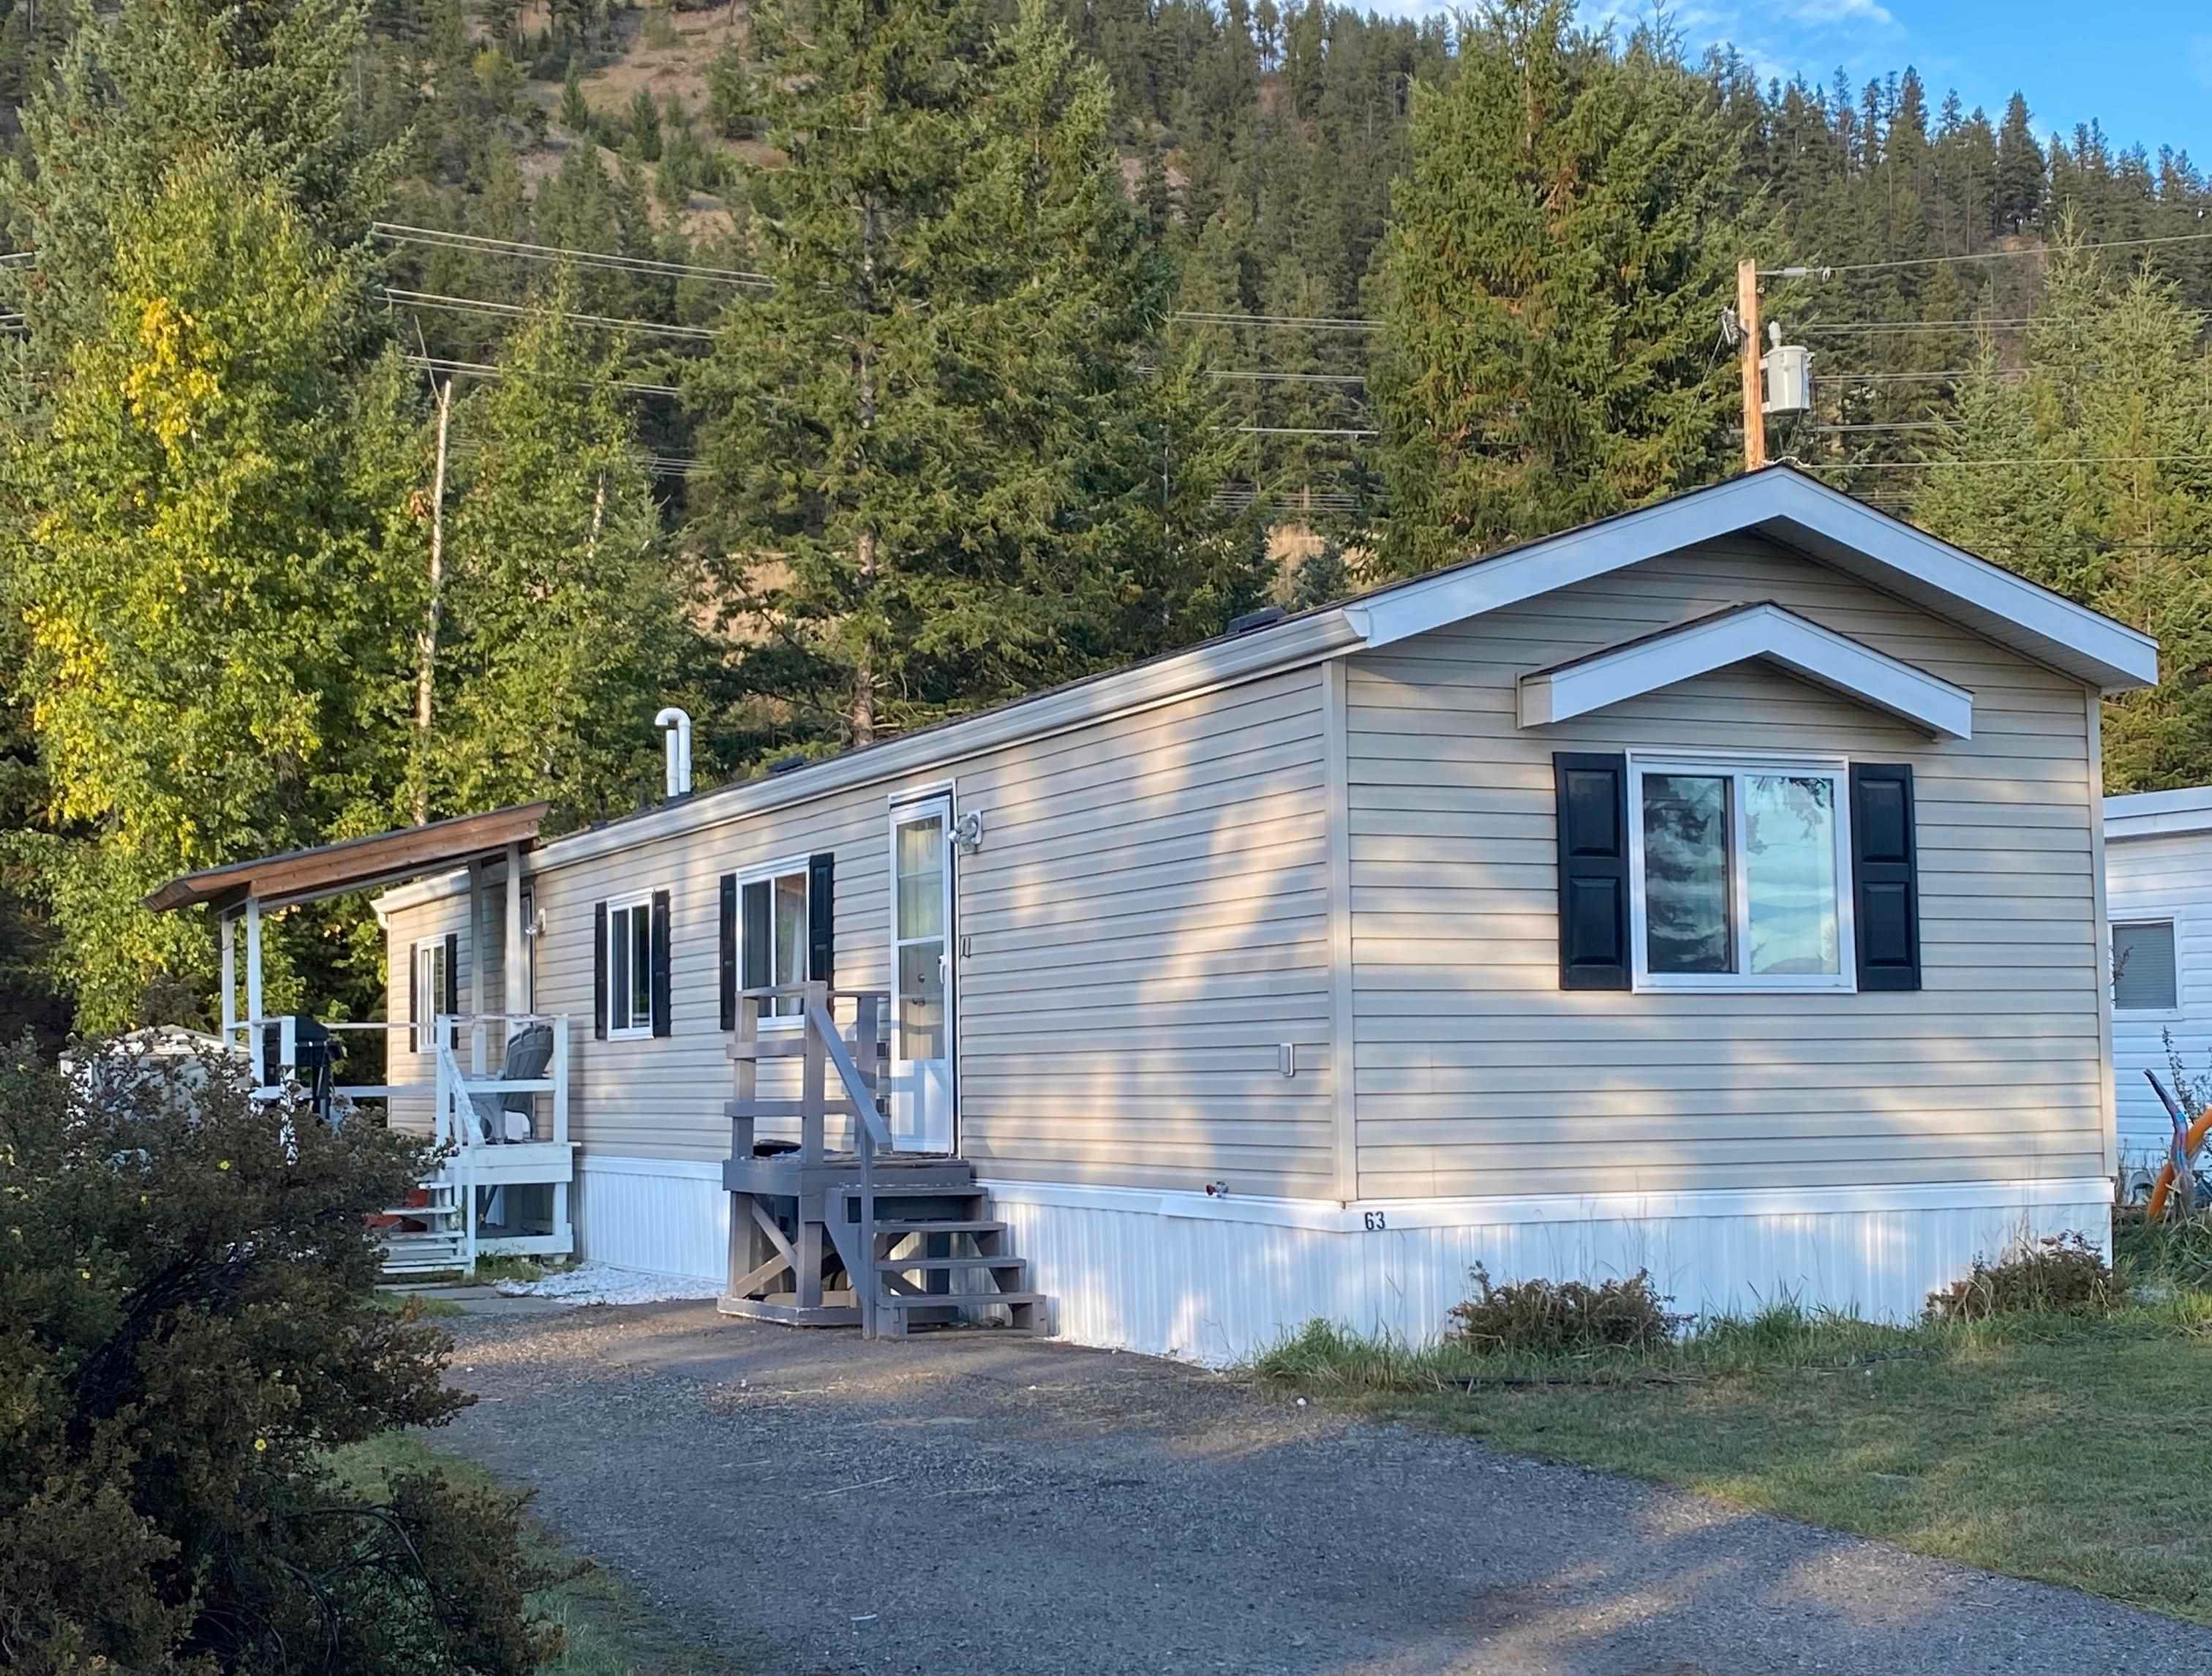 """Main Photo: 63 770 11TH Avenue in Williams Lake: Williams Lake - City Manufactured Home for sale in """"FRAN LEE"""" (Williams Lake (Zone 27))  : MLS®# R2617828"""